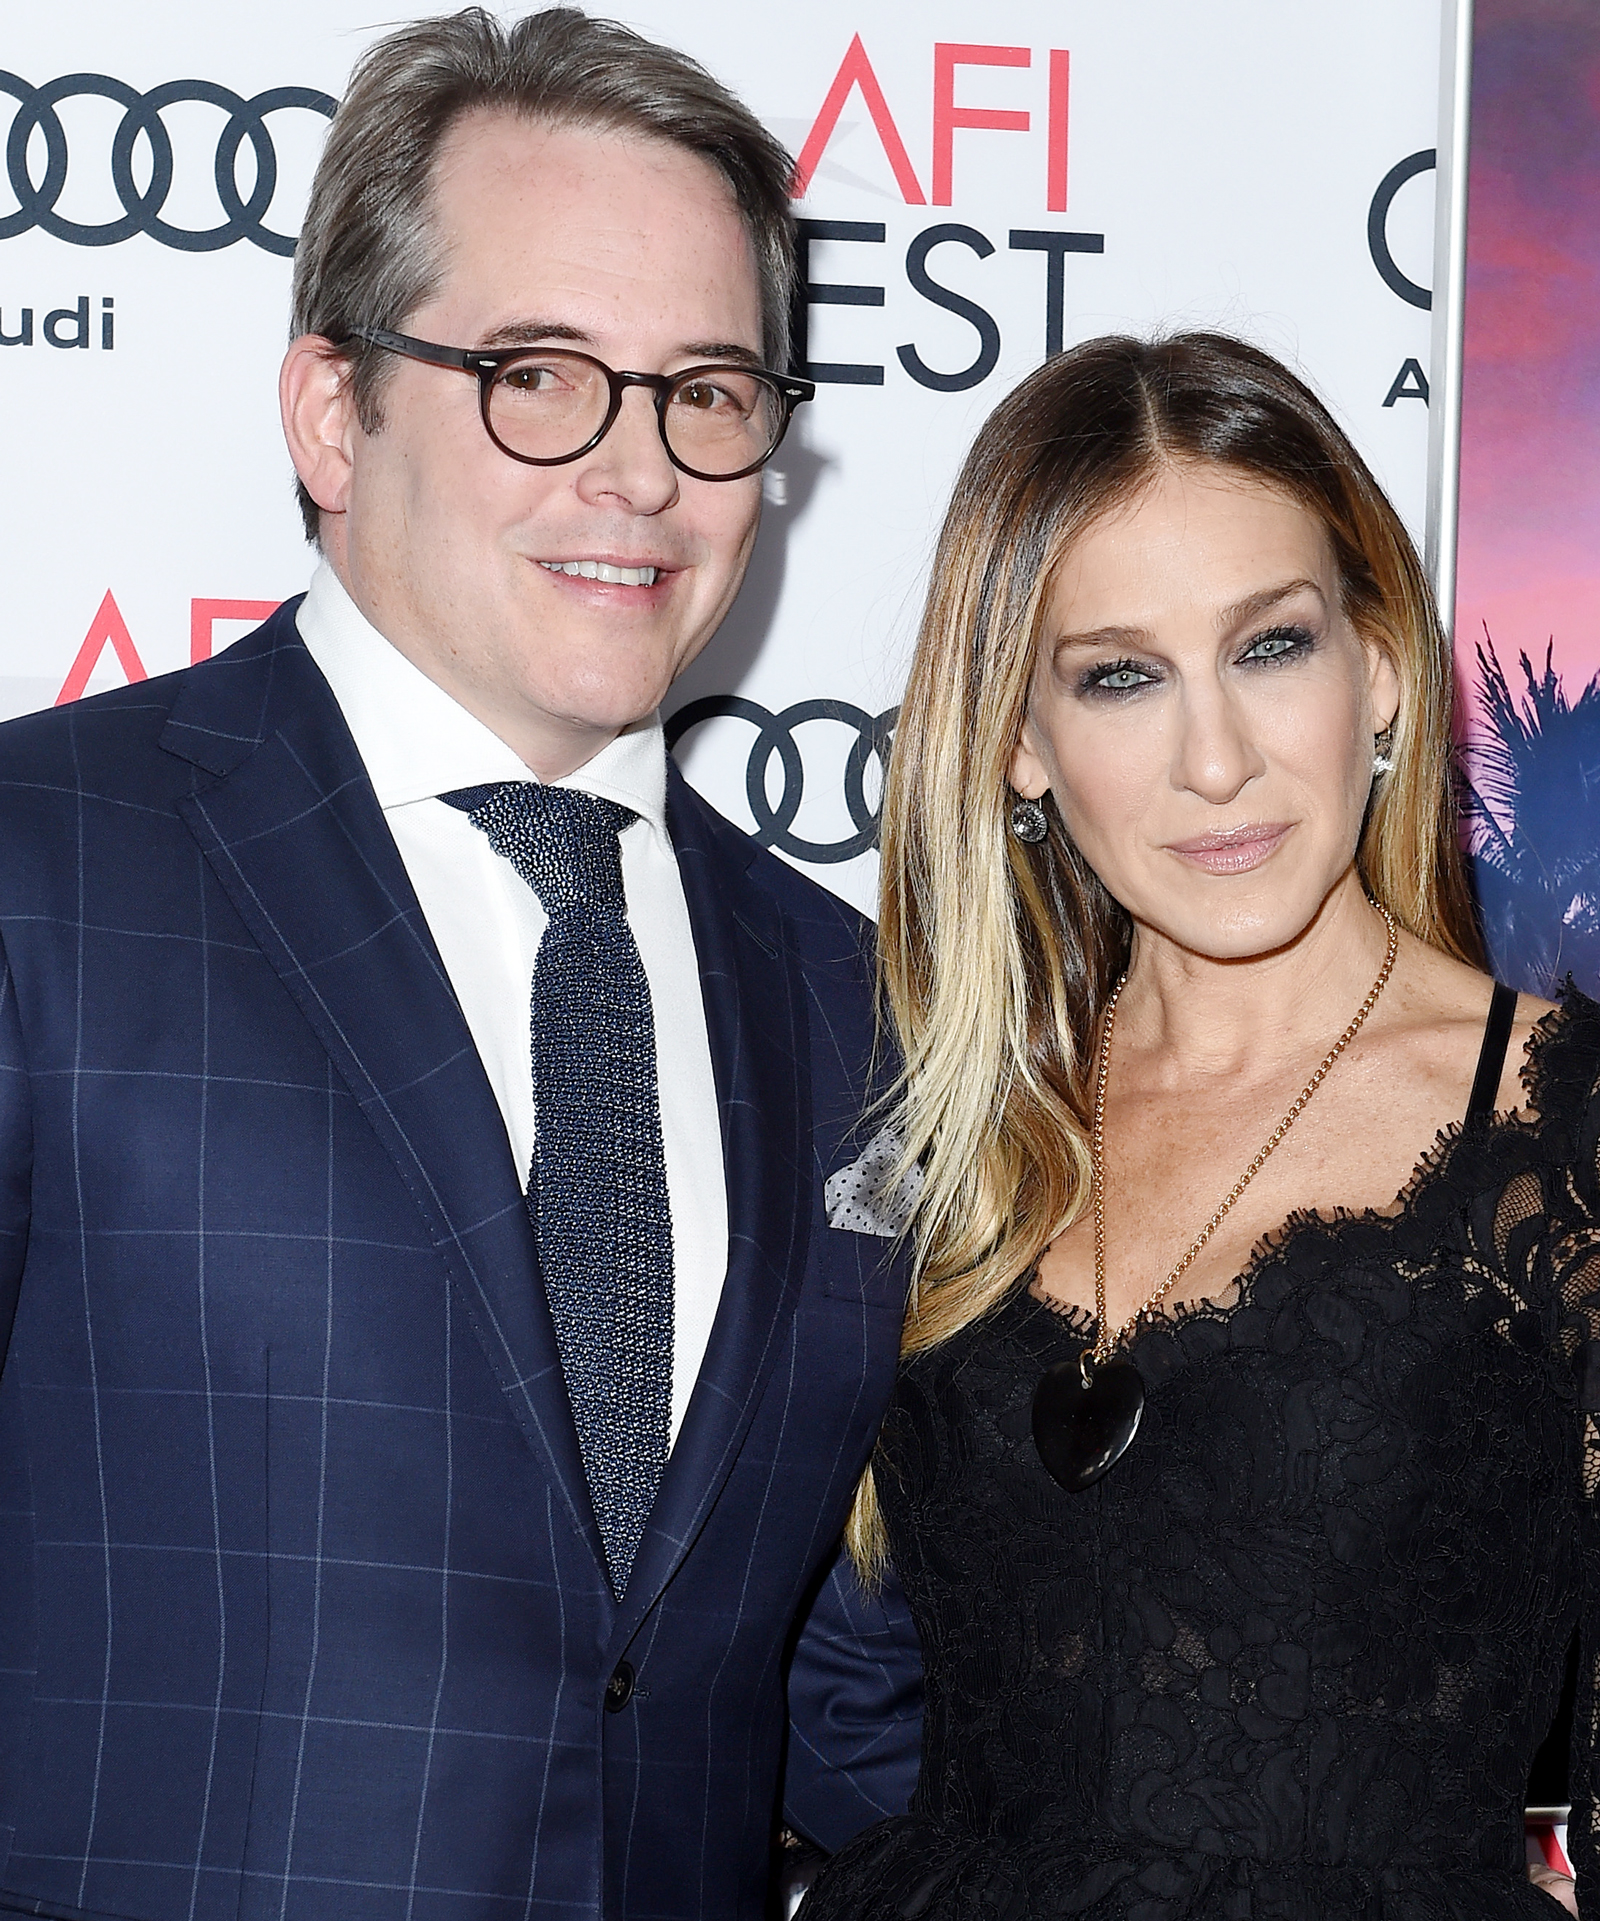 Answer: Matthew Broderick and Sarah Jessica Parker